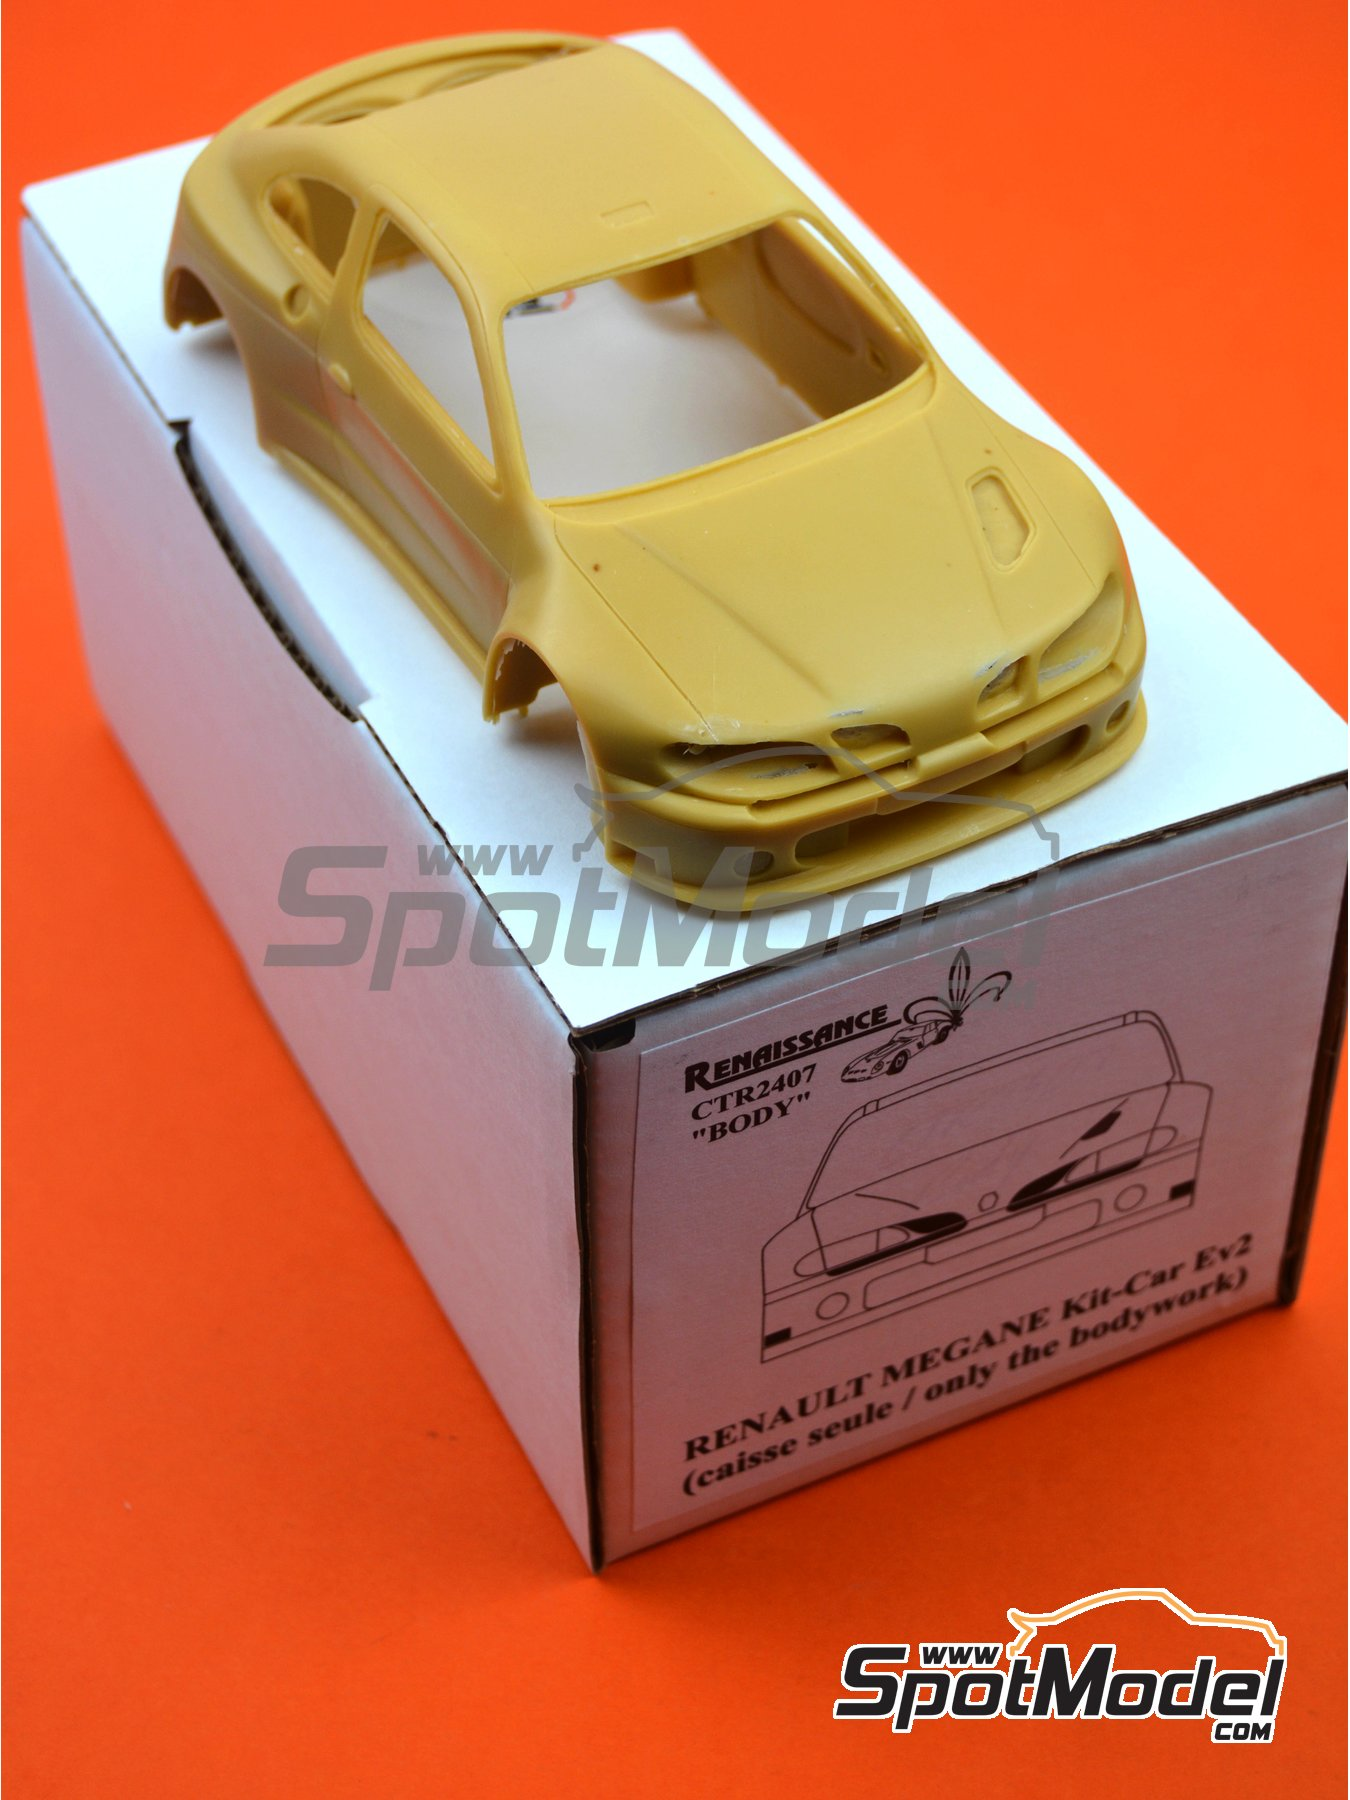 Renault Megane Maxi Kit Car | Bodywork in 1/24 scale manufactured by Renaissance Models (ref. CTR2407-BODY) image